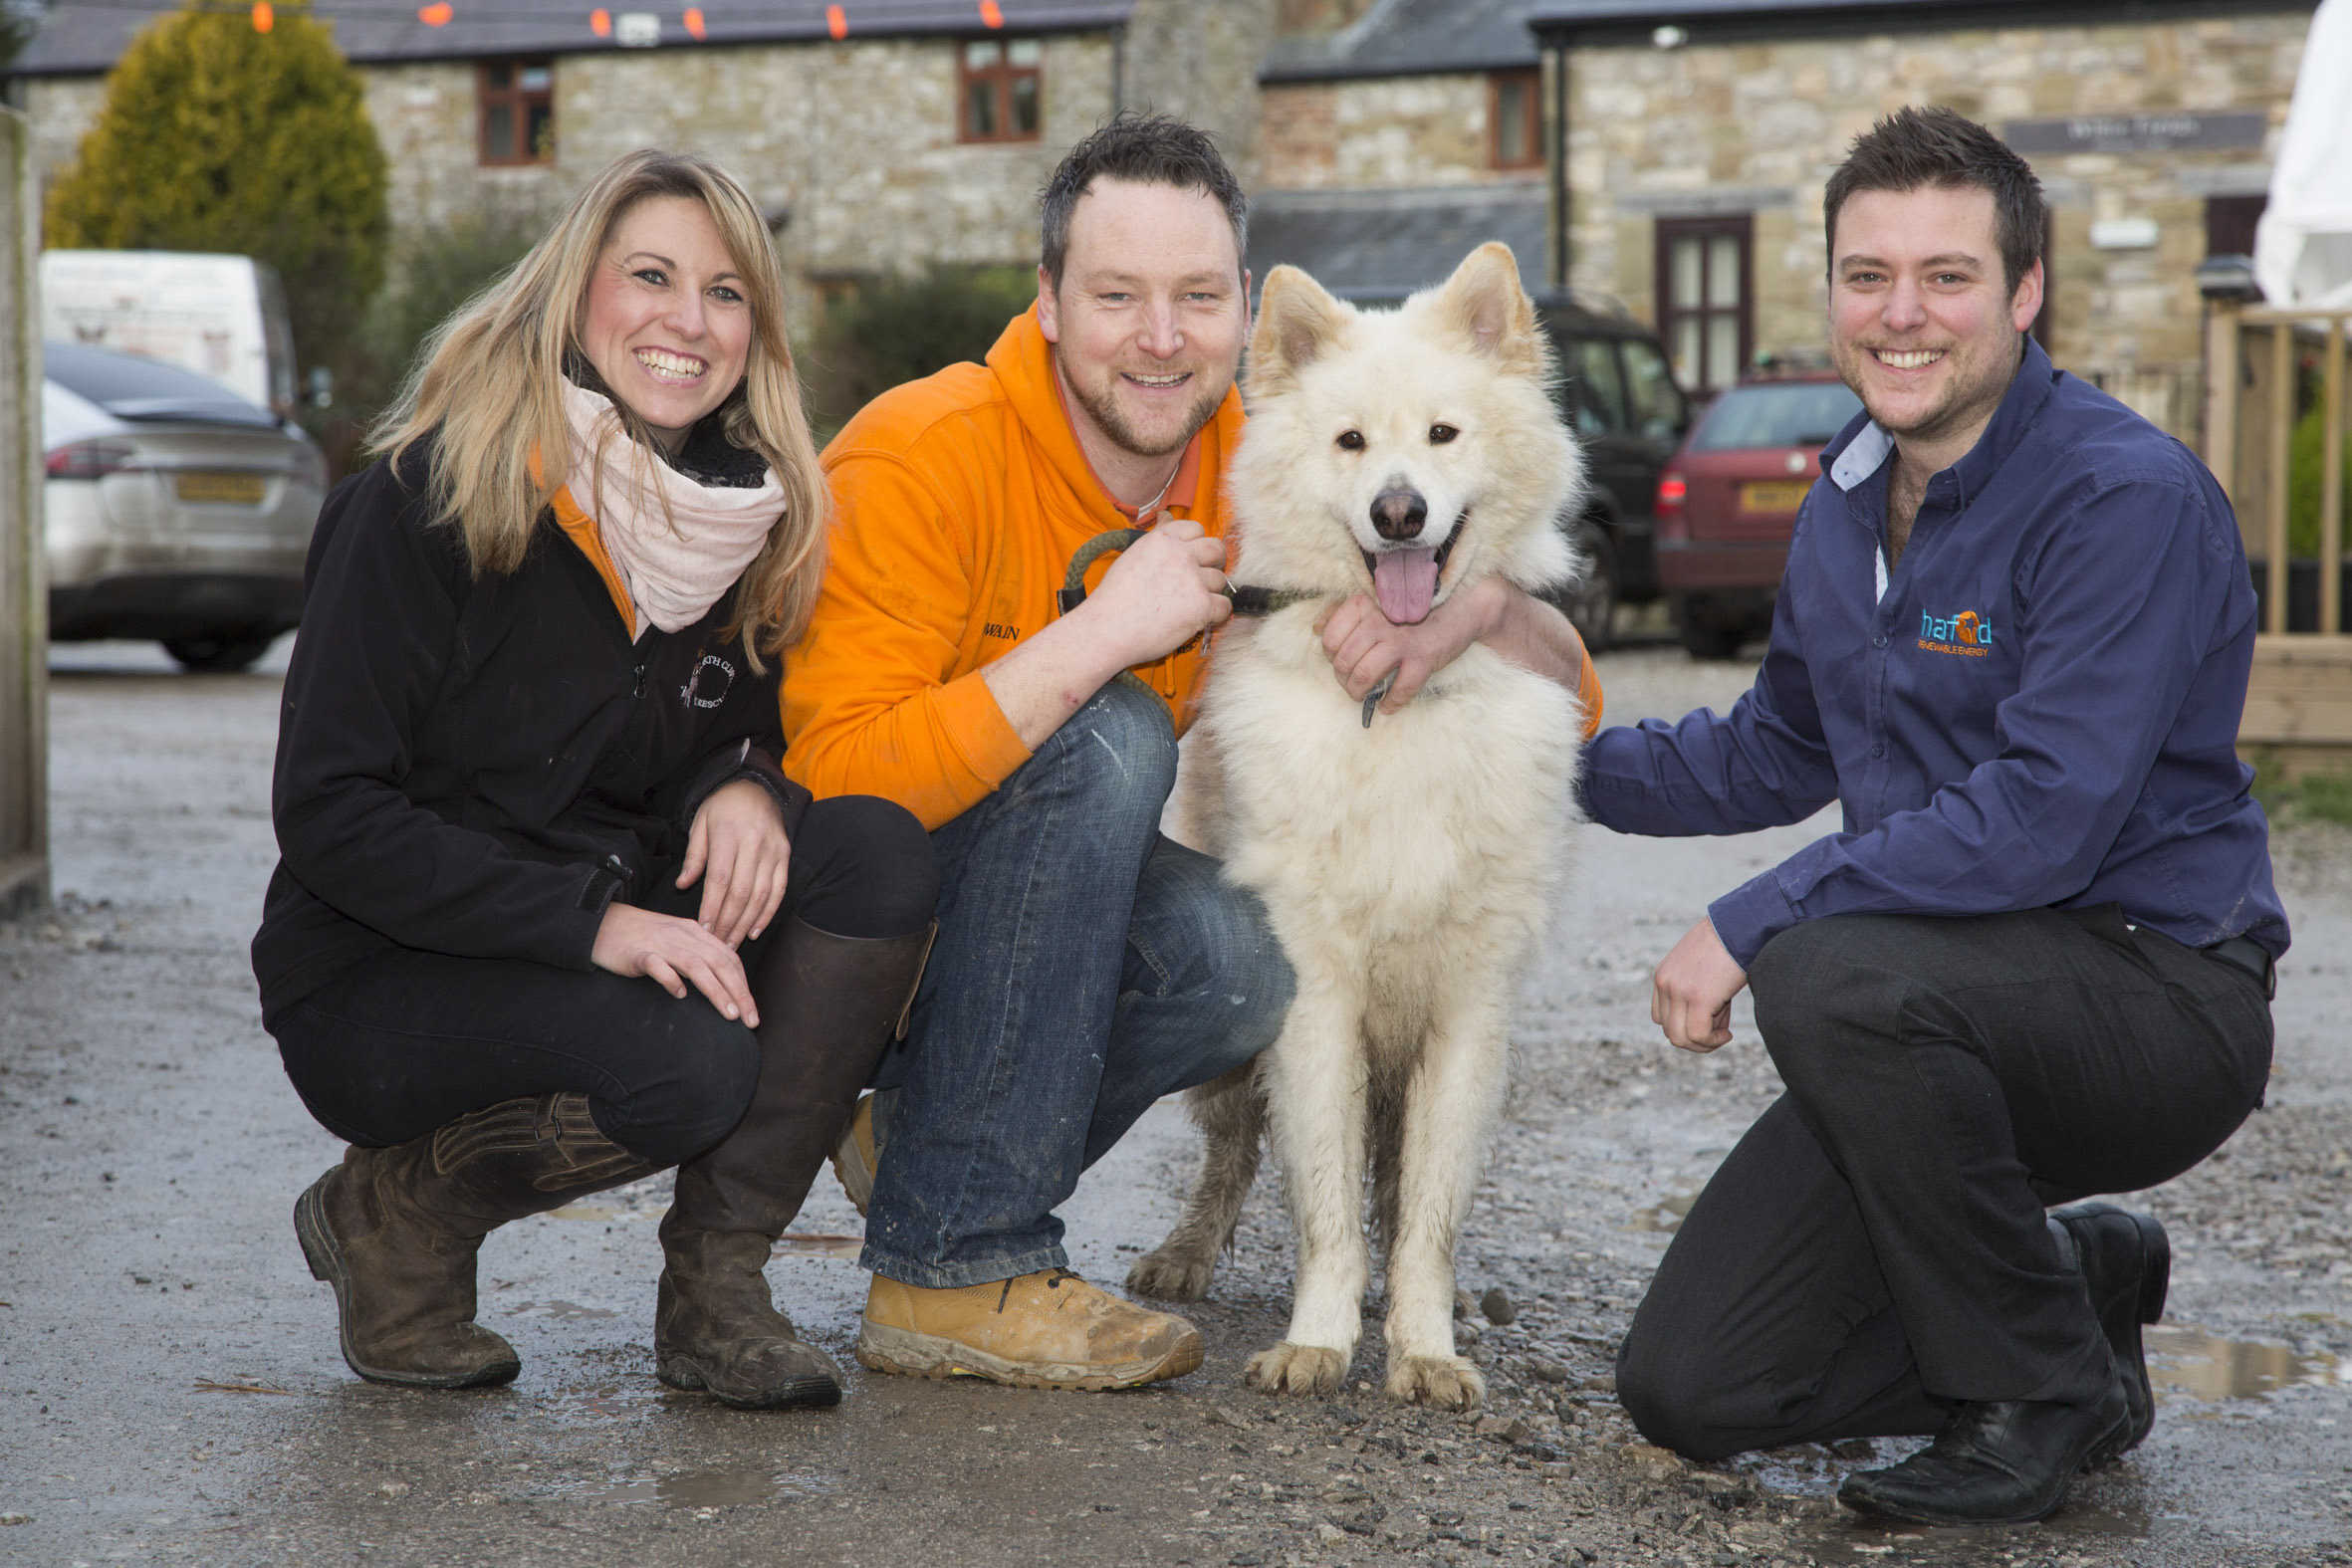 Hafod Renewables at North Clwyd Animal Rescue Trelogan. Pictured are Nicky Owen, media relations and fundraising manager at North Clwyd Animal Rescue, Owain Horton, General Manager and David Jones from Hafod Renewables with Zak the Dog.